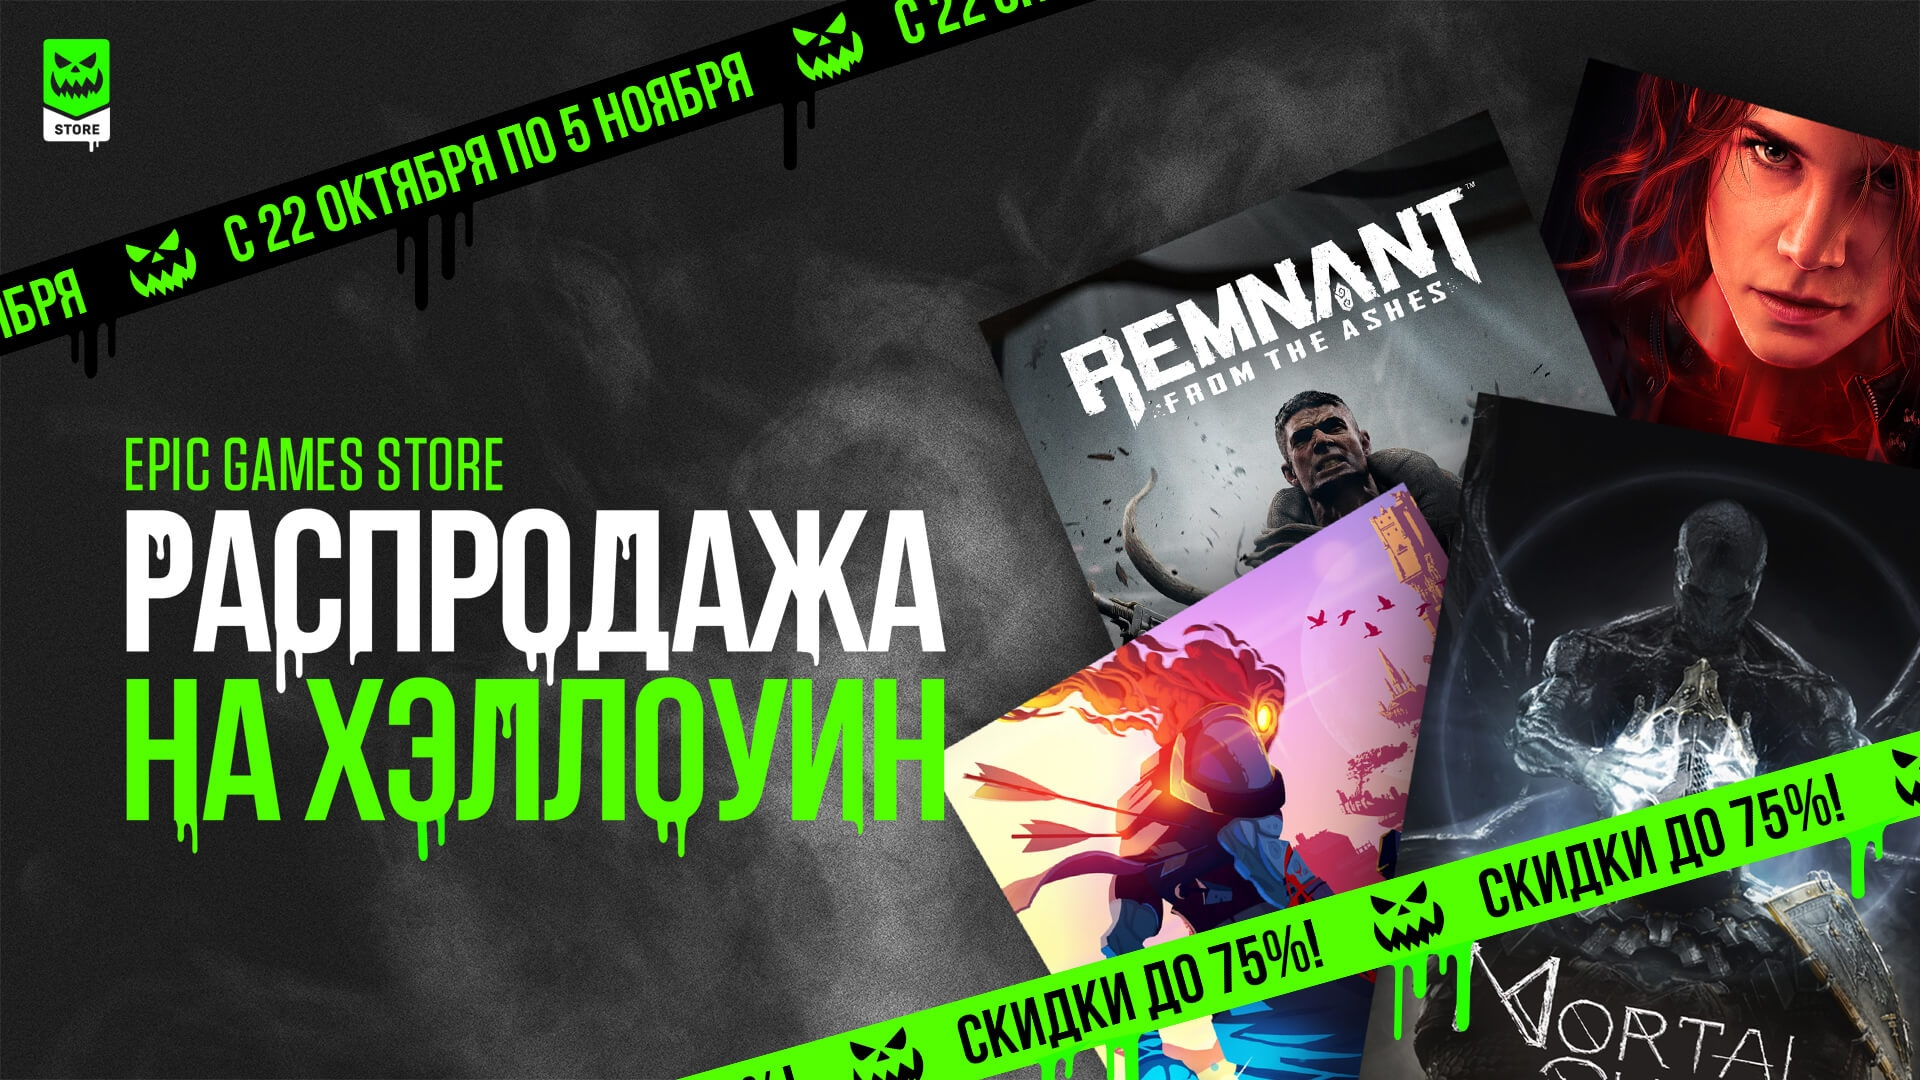 Хэллоуинская распродажа в EGS: Death Stranding, Borderlands 3 и Red Dead Redemption 2